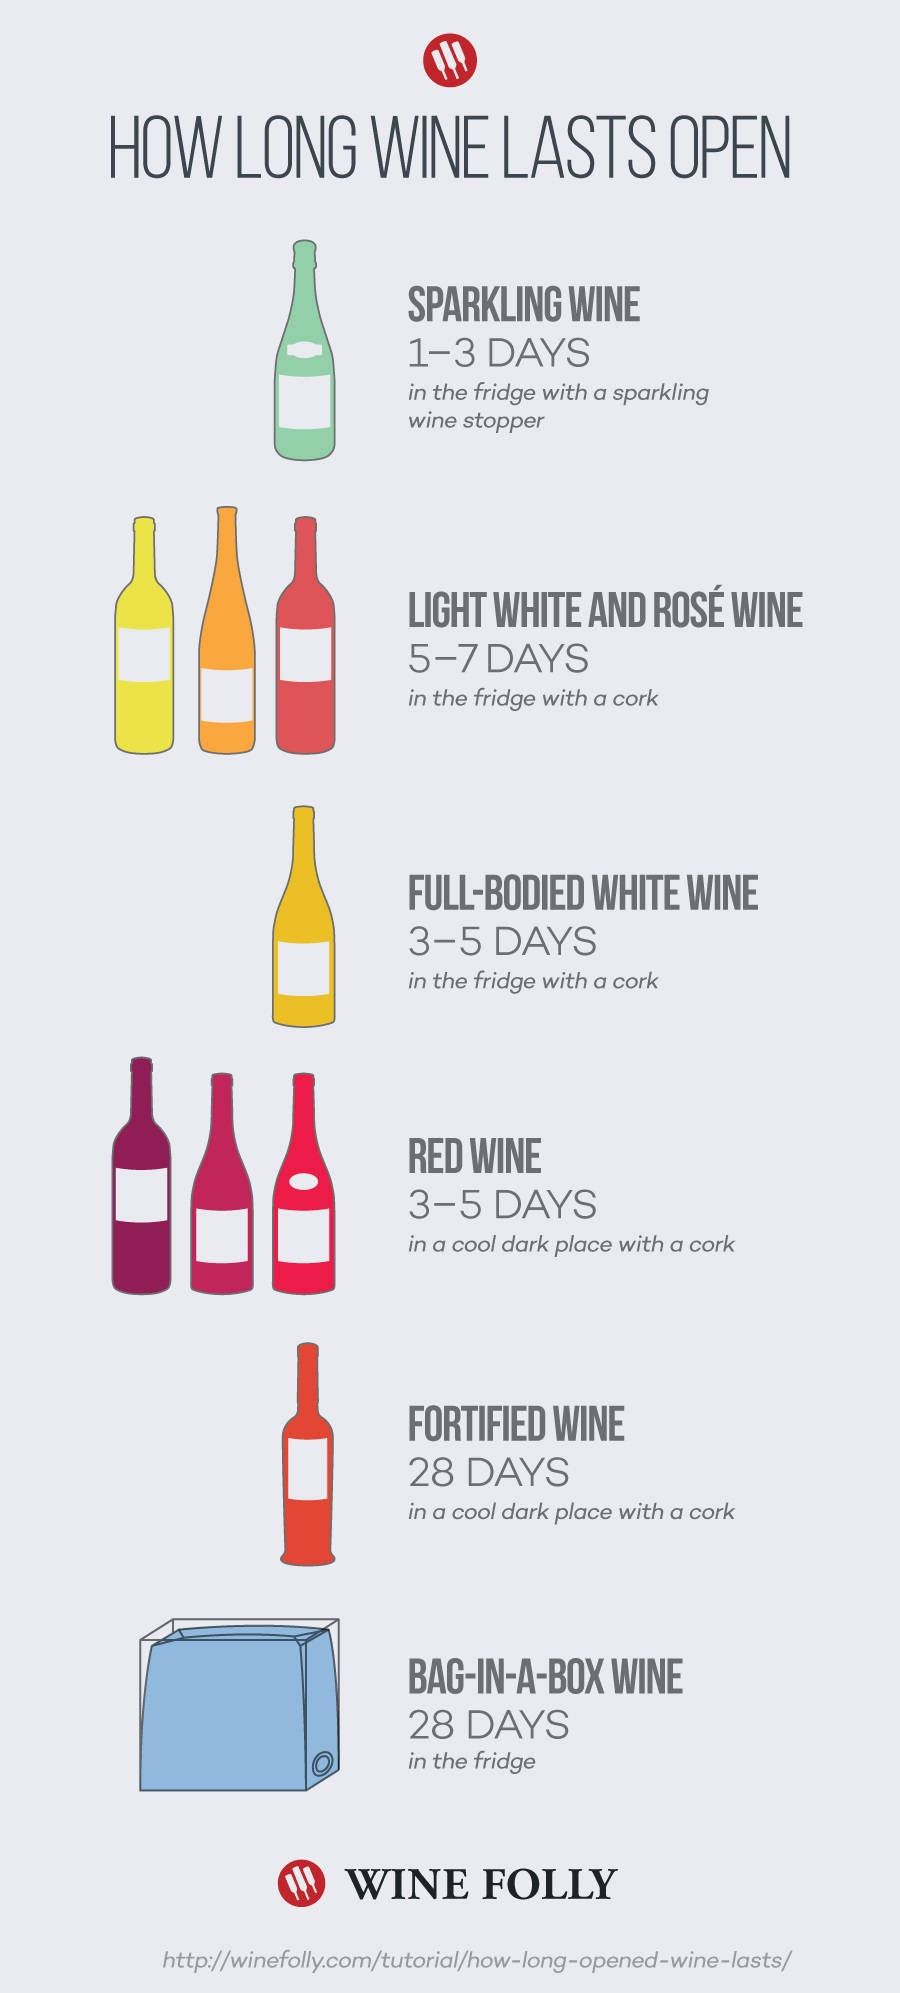 How Long Does Wine Last Opened?